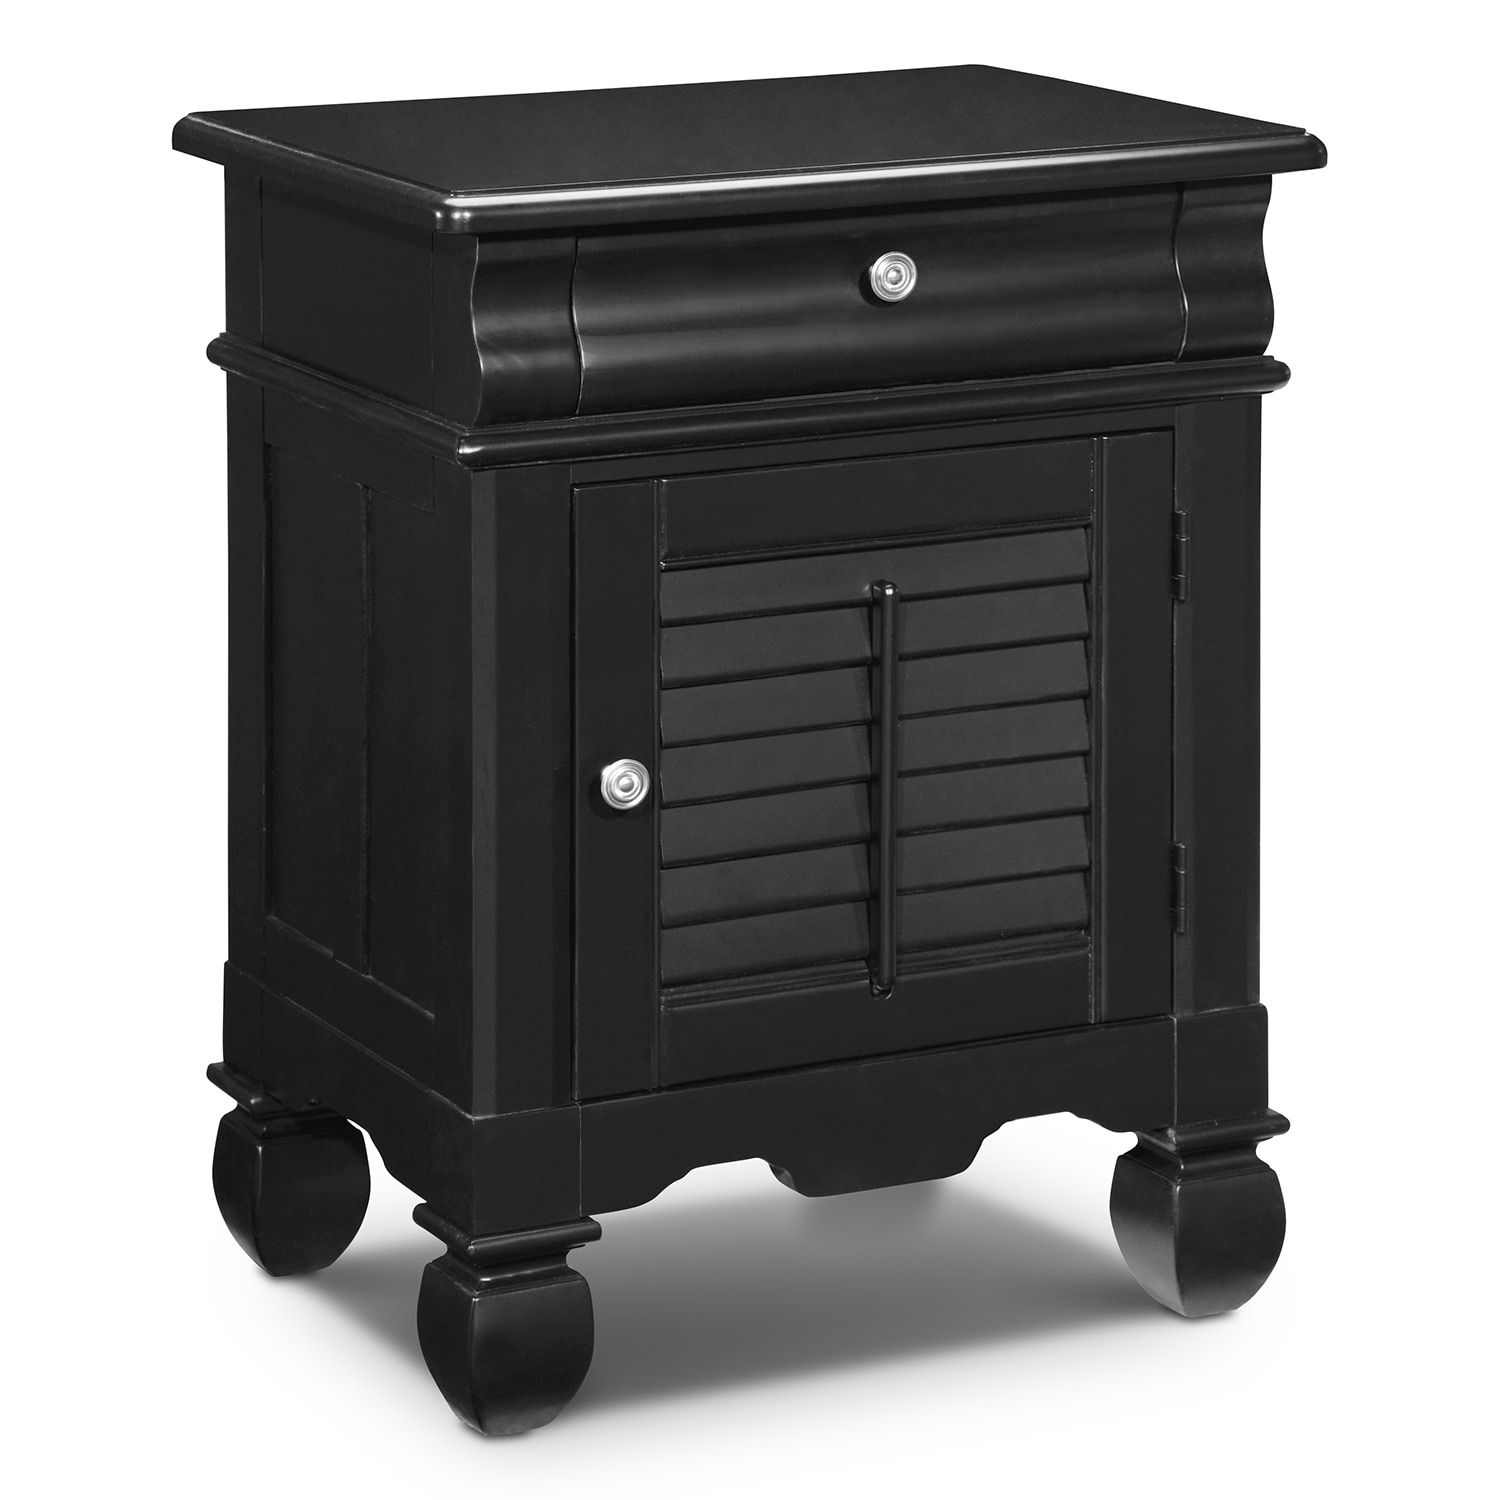 Bedroom Furniture - Plantation Cove Black Door Nightstand